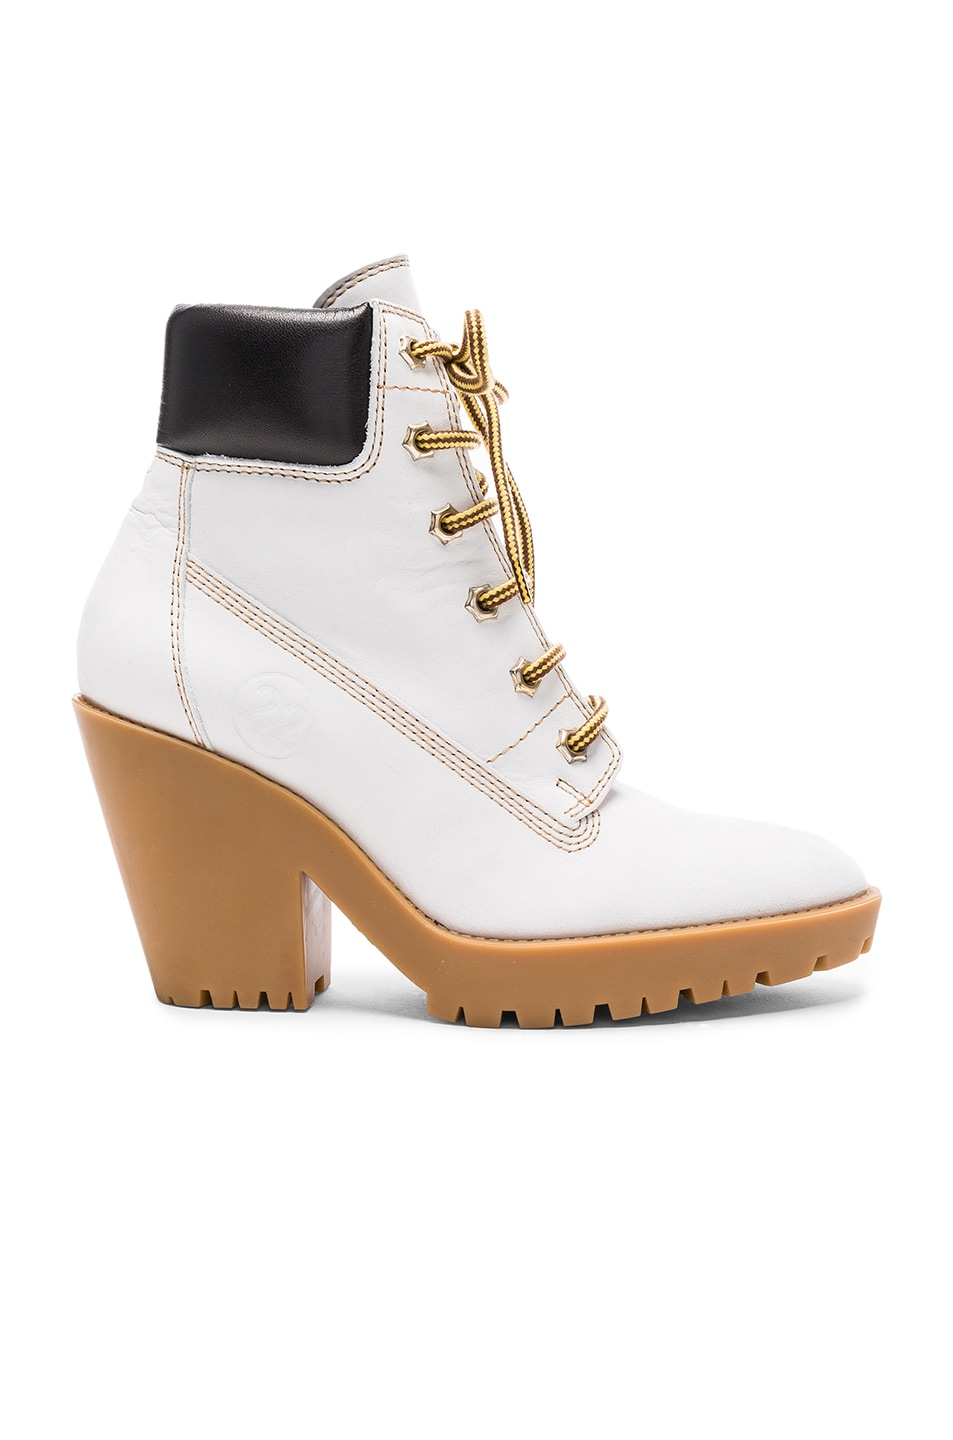 Image 1 of Maison Margiela Leather Lace Up Booties in White